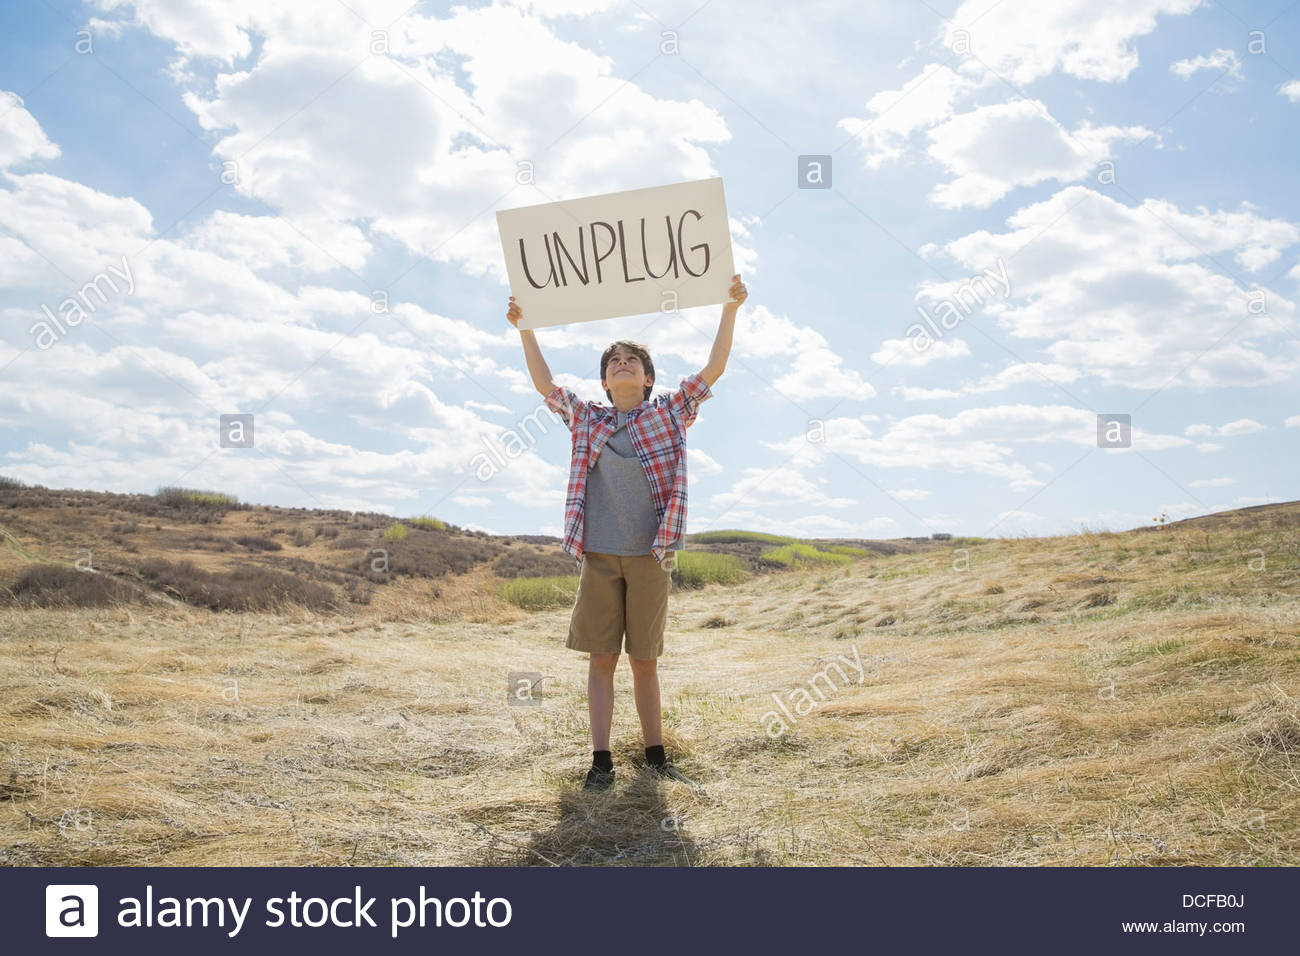 Portrait of little boy holding unplug sign outdoors - Stock Image